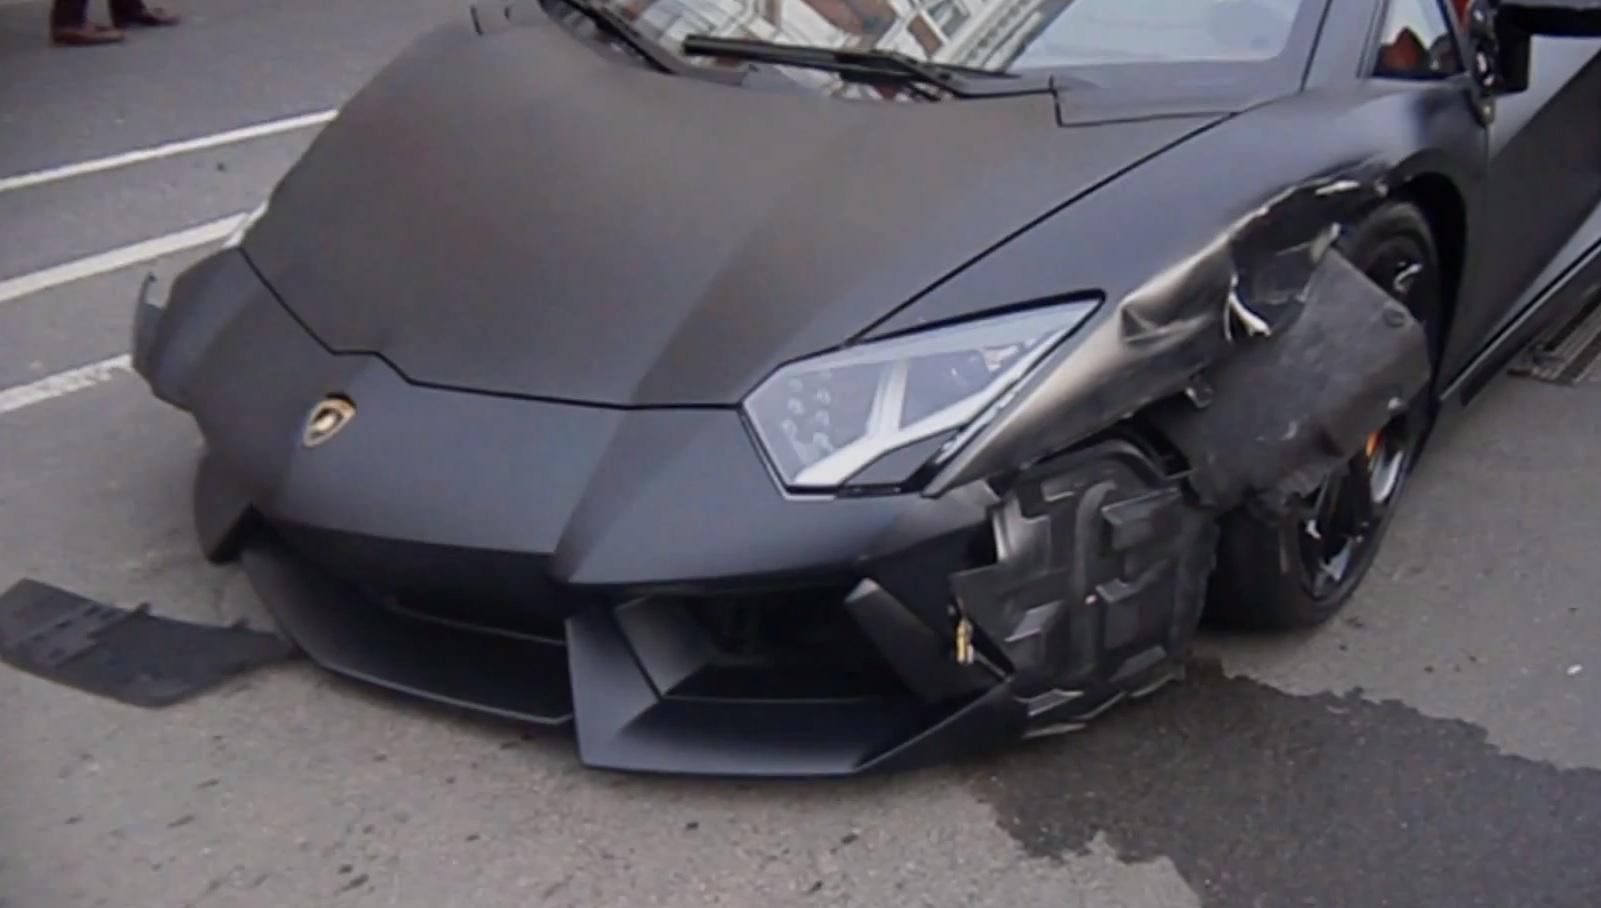 Demolition derby: The top five car crashes on the Internet that ...